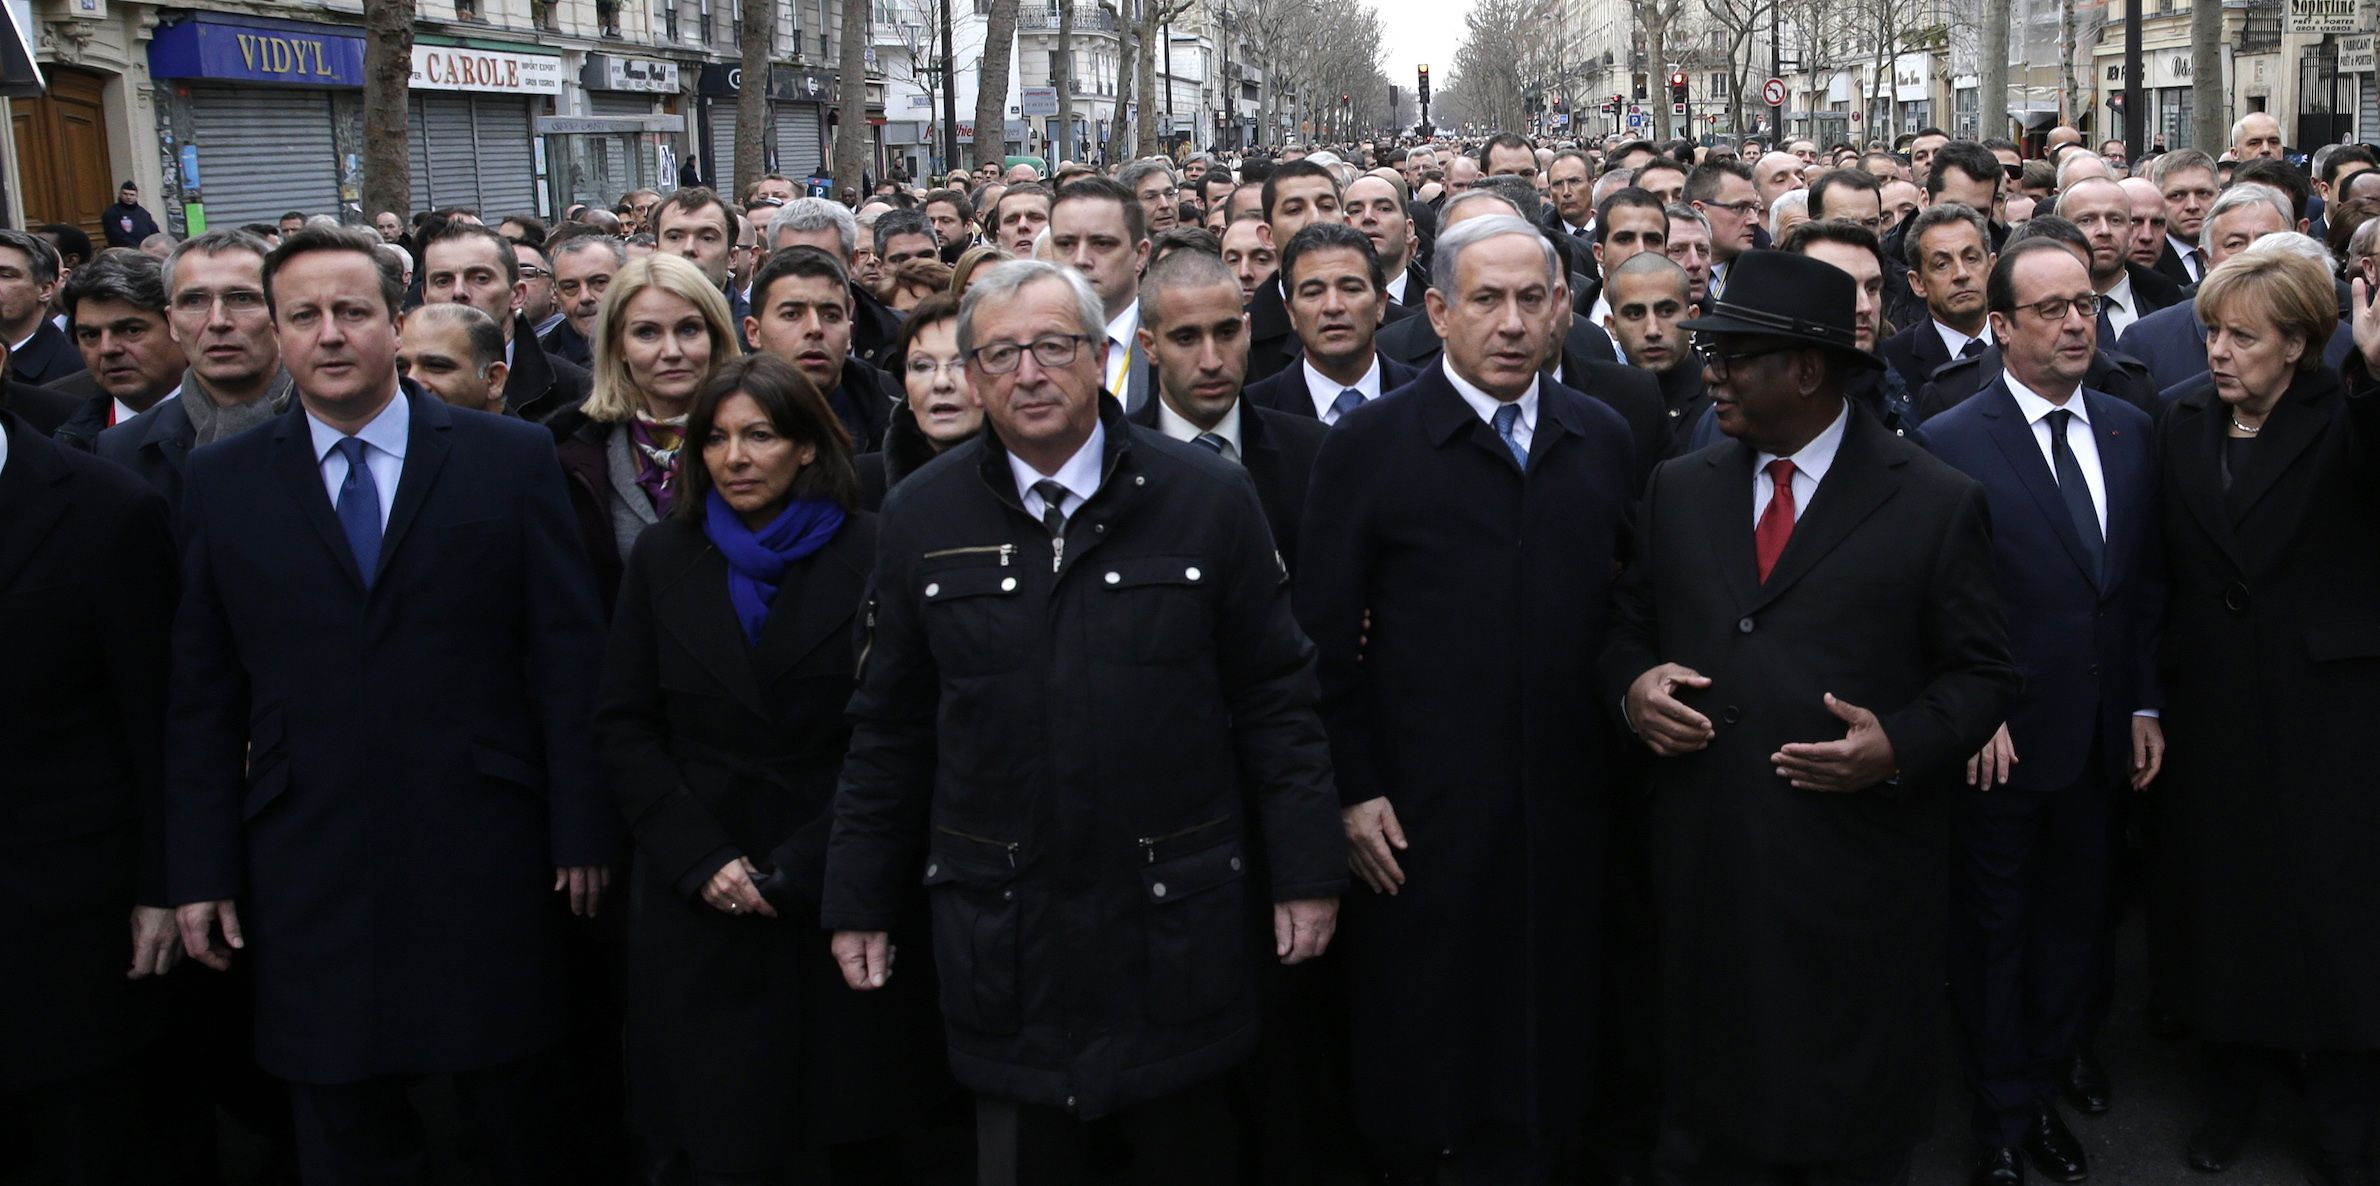 French President Francois Hollande is surrounded by heads of state including Britain's Prime Minister David Cameron (L), Israel's Prime Minister Benjamin Netanyahu (4thR), Mali's President Ibrahim Boubacar Keita (3rdR) and Germany's Chancellor Angela Merkel as they attend the solidarity march (Marche Republicaine) in the streets of Paris January 11, 2015. French citizens will be joined by dozens of foreign leaders, among them Arab and Muslim representatives, in a march on Sunday in an unprecedented tribute to this week's victims following the shootings by gunmen at the offices of the satirical weekly newspaper Charlie Hebdo, the killing of a police woman in Montrouge, and the hostage taking at a kosher supermarket at the Porte de Vincennes.           REUTERS/Philippe Wojazer (FRANCE  - Tags: CRIME LAW POLITICS CIVIL UNREST SOCIETY)   - RTR4KX60